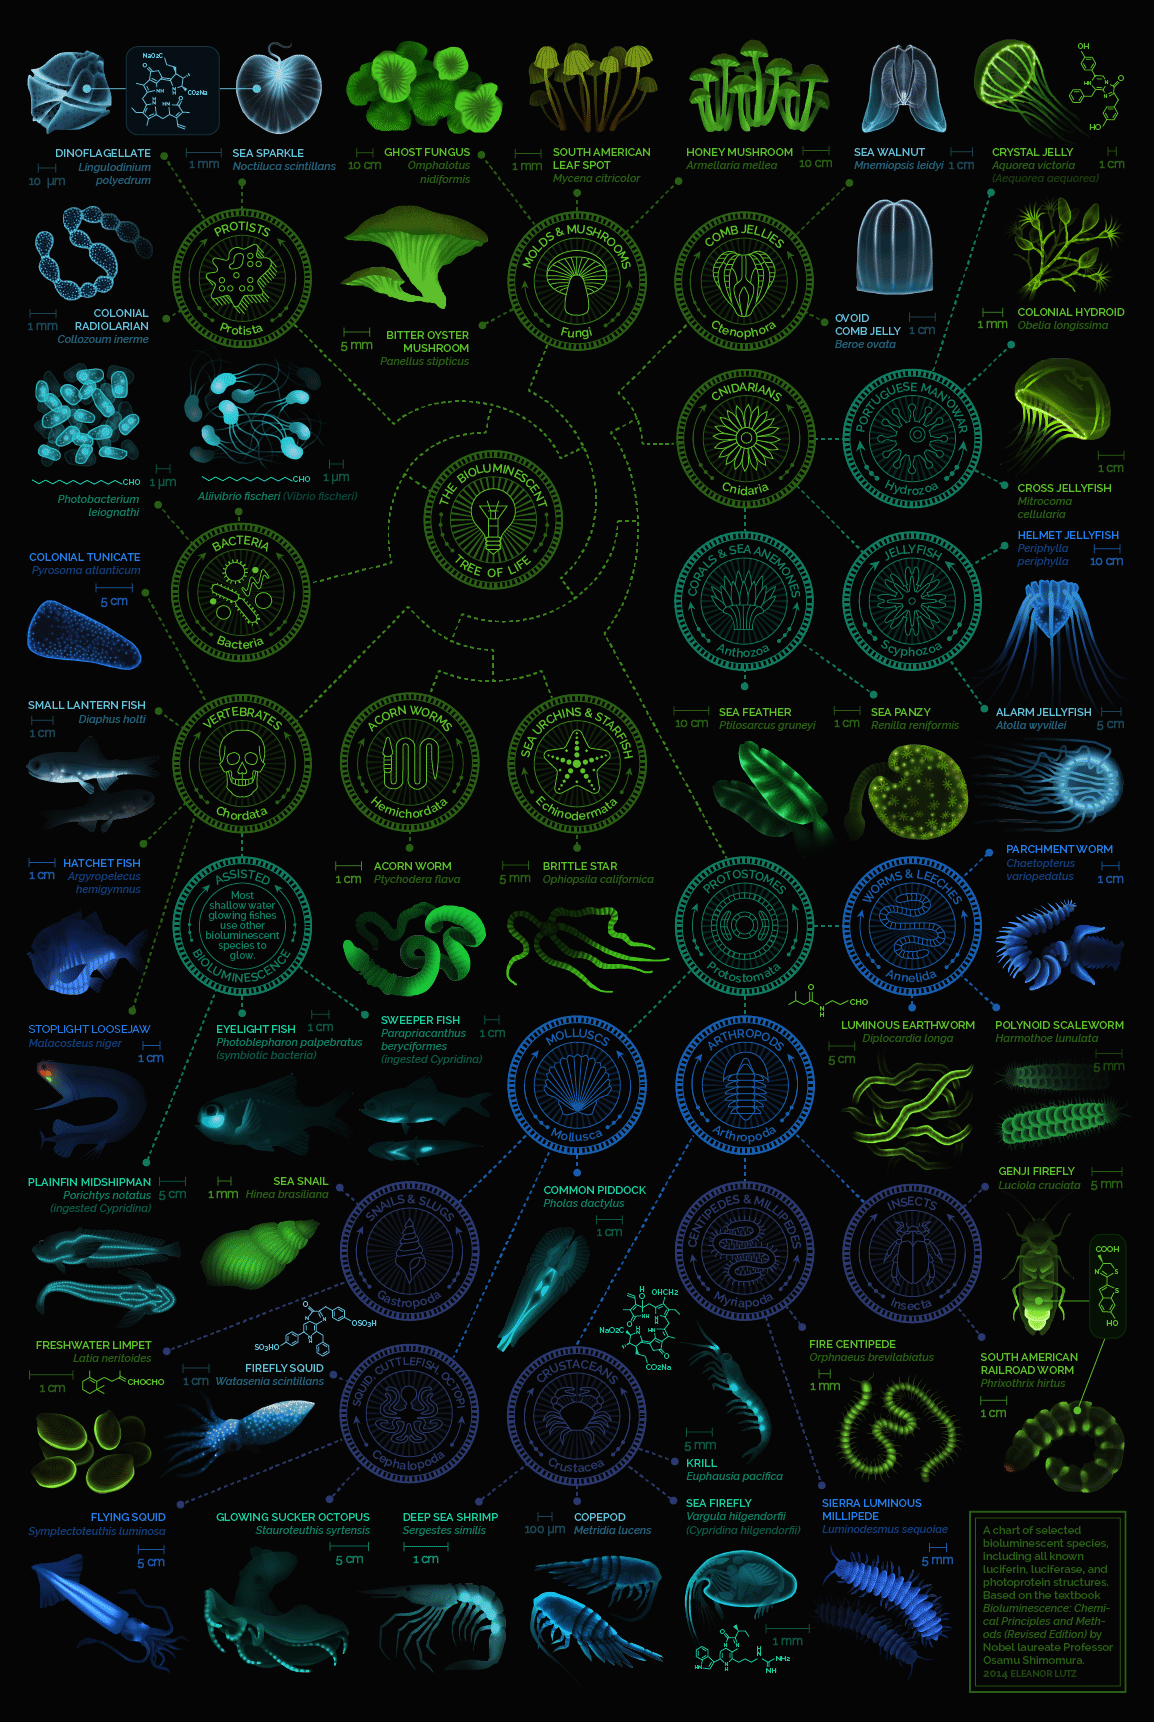 Bioluminescent tree of life by Eleanor Lutz catalogs several bioluminescent organisms and their organizations. Much like early works by Pliny the Elder's, Kircher's and Gessner's works cataloging bioluminescent phenomena